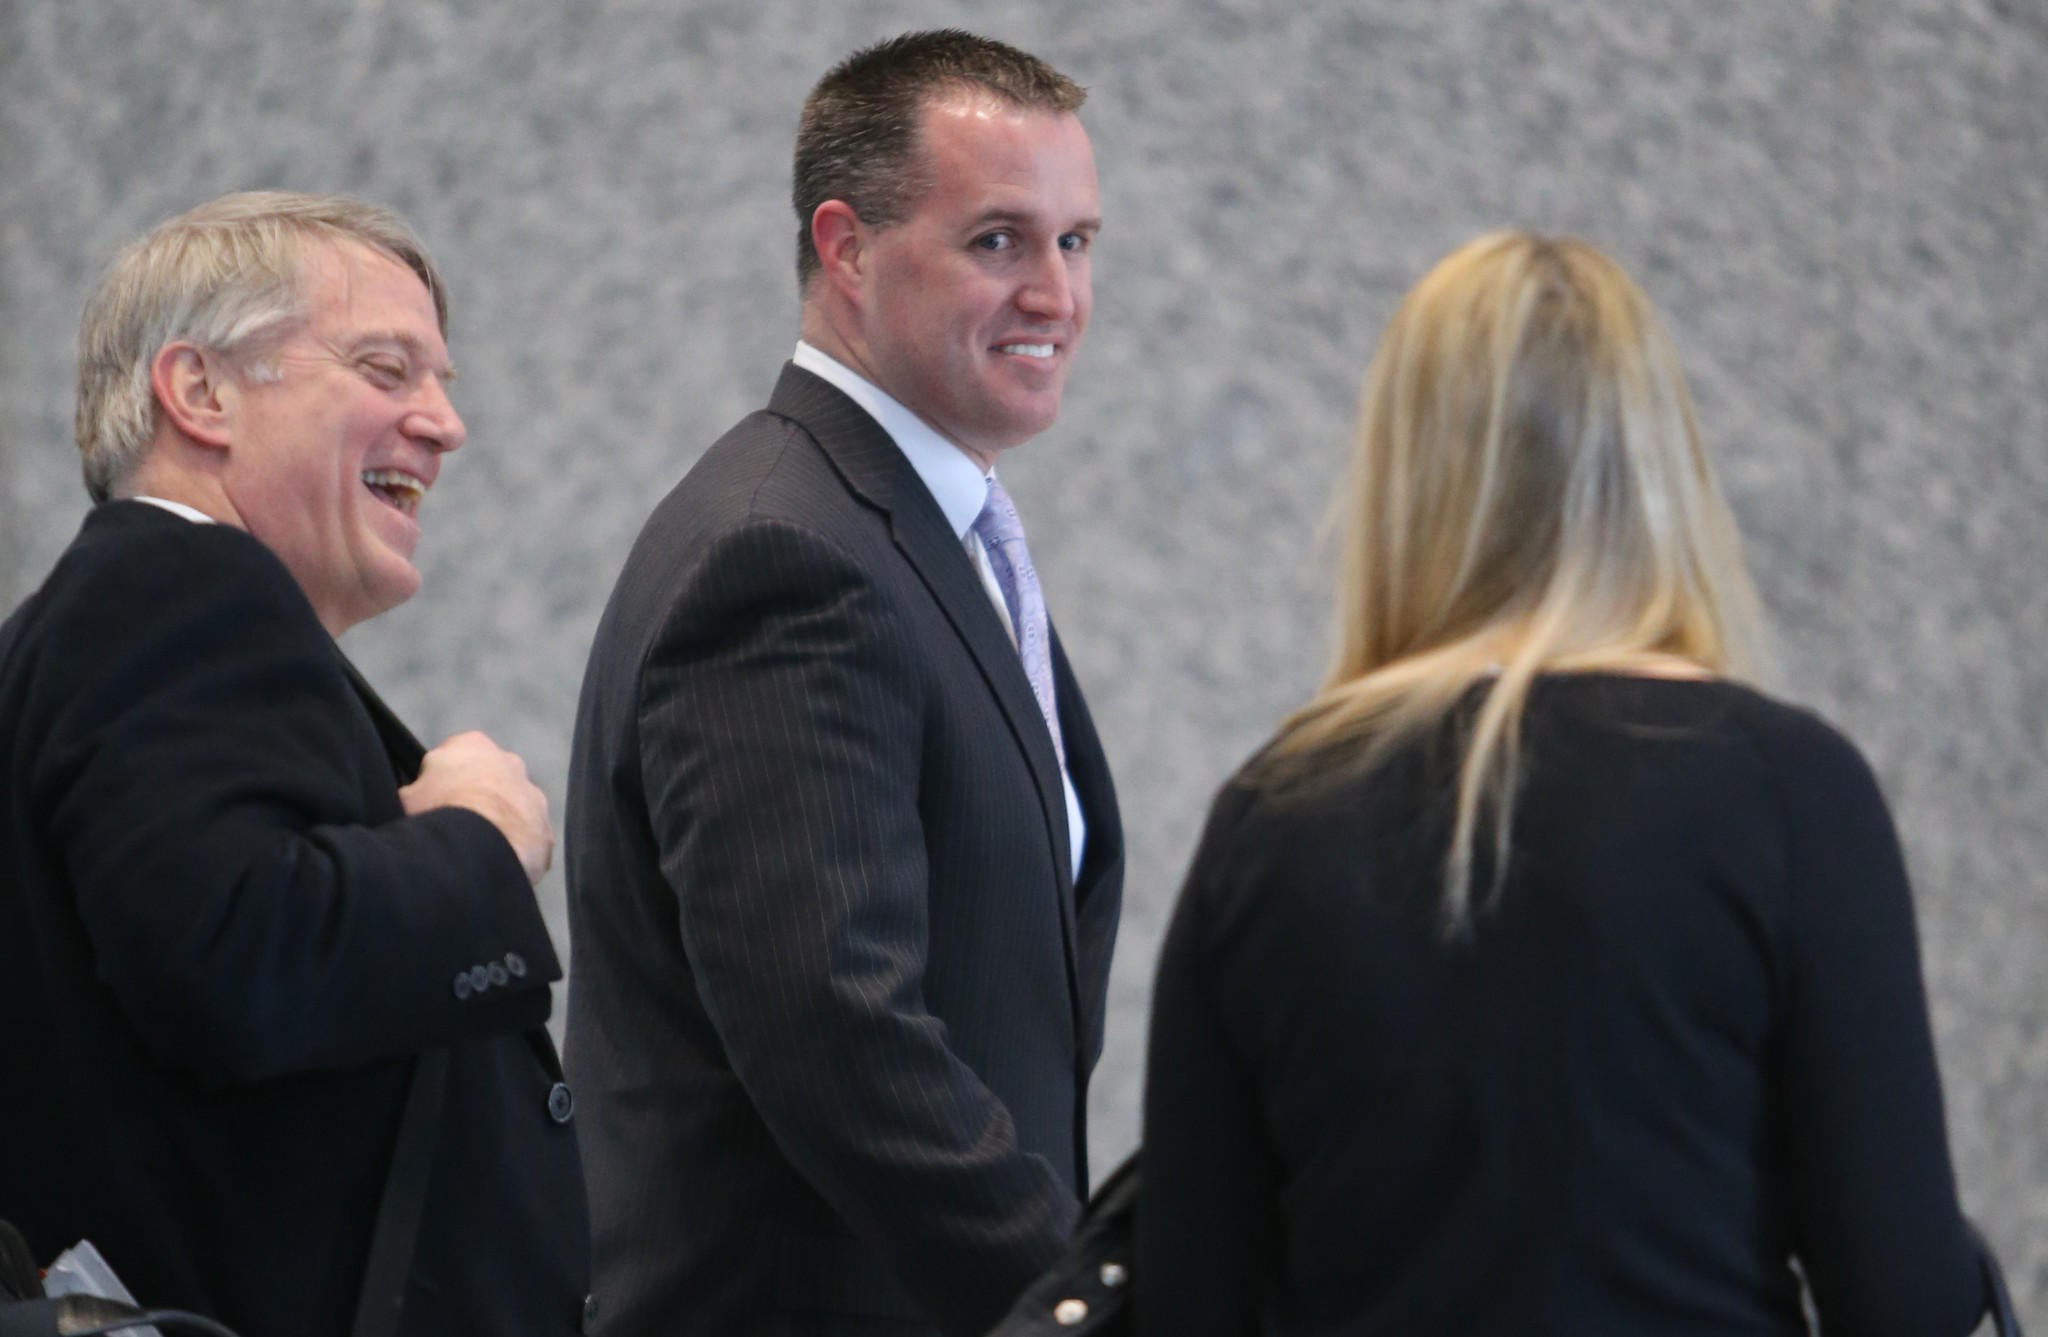 Northwestern University head football coach Pat Fitzgerald arrives at the Dirksen U.S. courthouse today to testify at the National Labor Relations Board hearing.